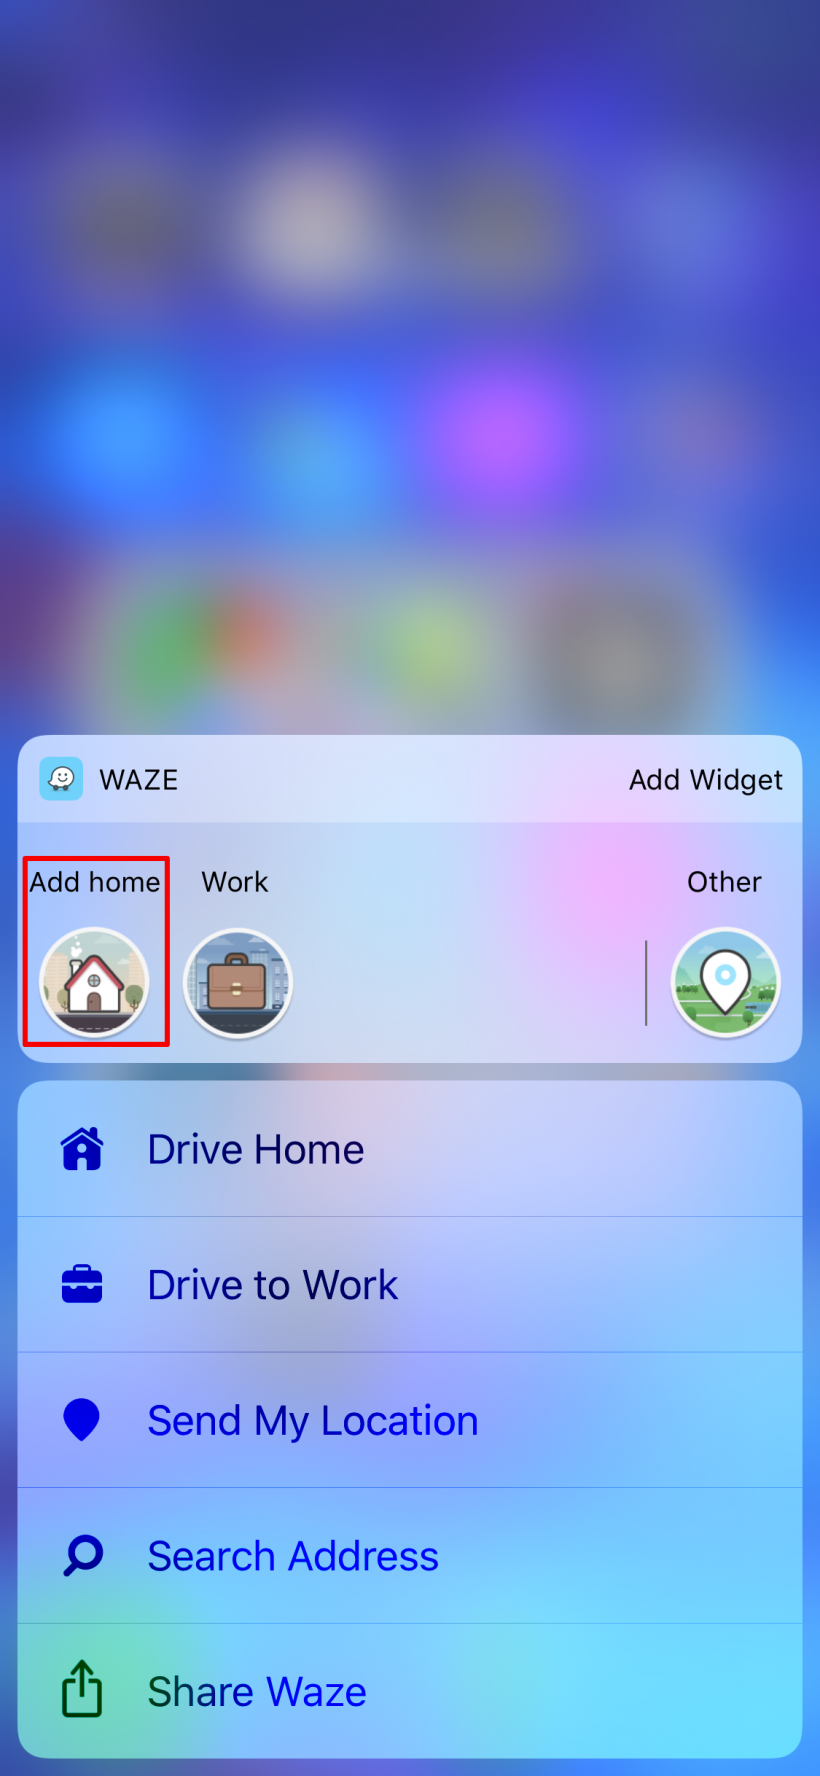 How to add a Home shortcut to Waze, Google Maps and Maps to quickly get directions on iPhone.